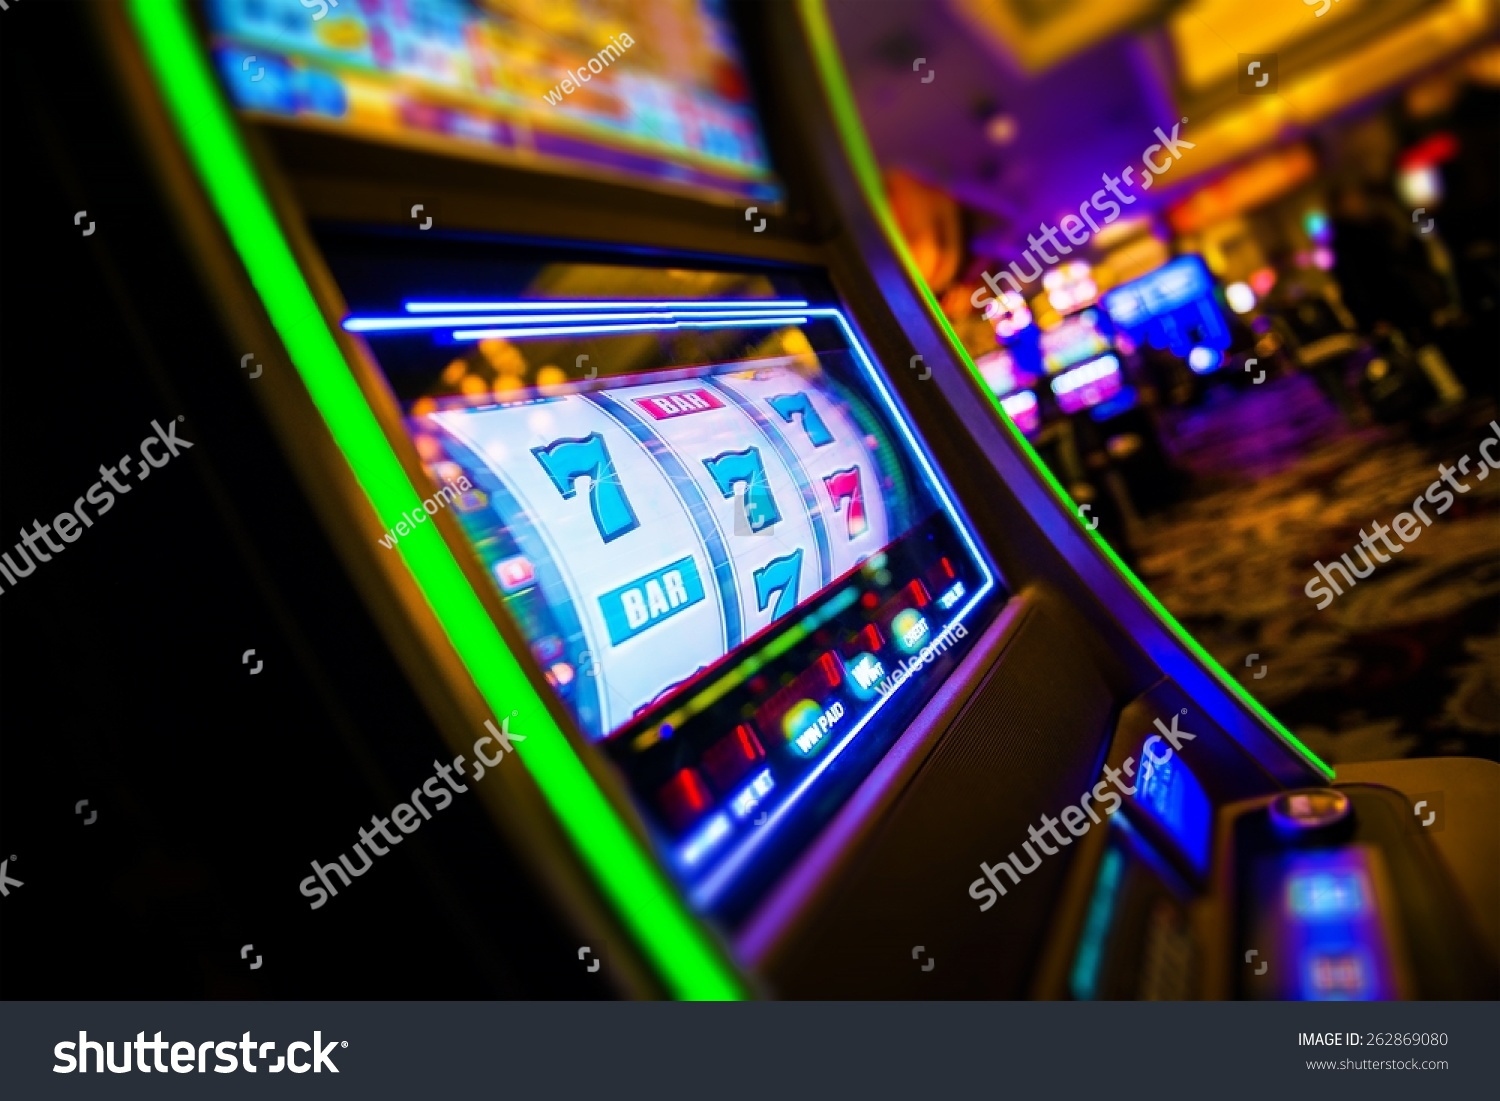 all slots casino forgot password